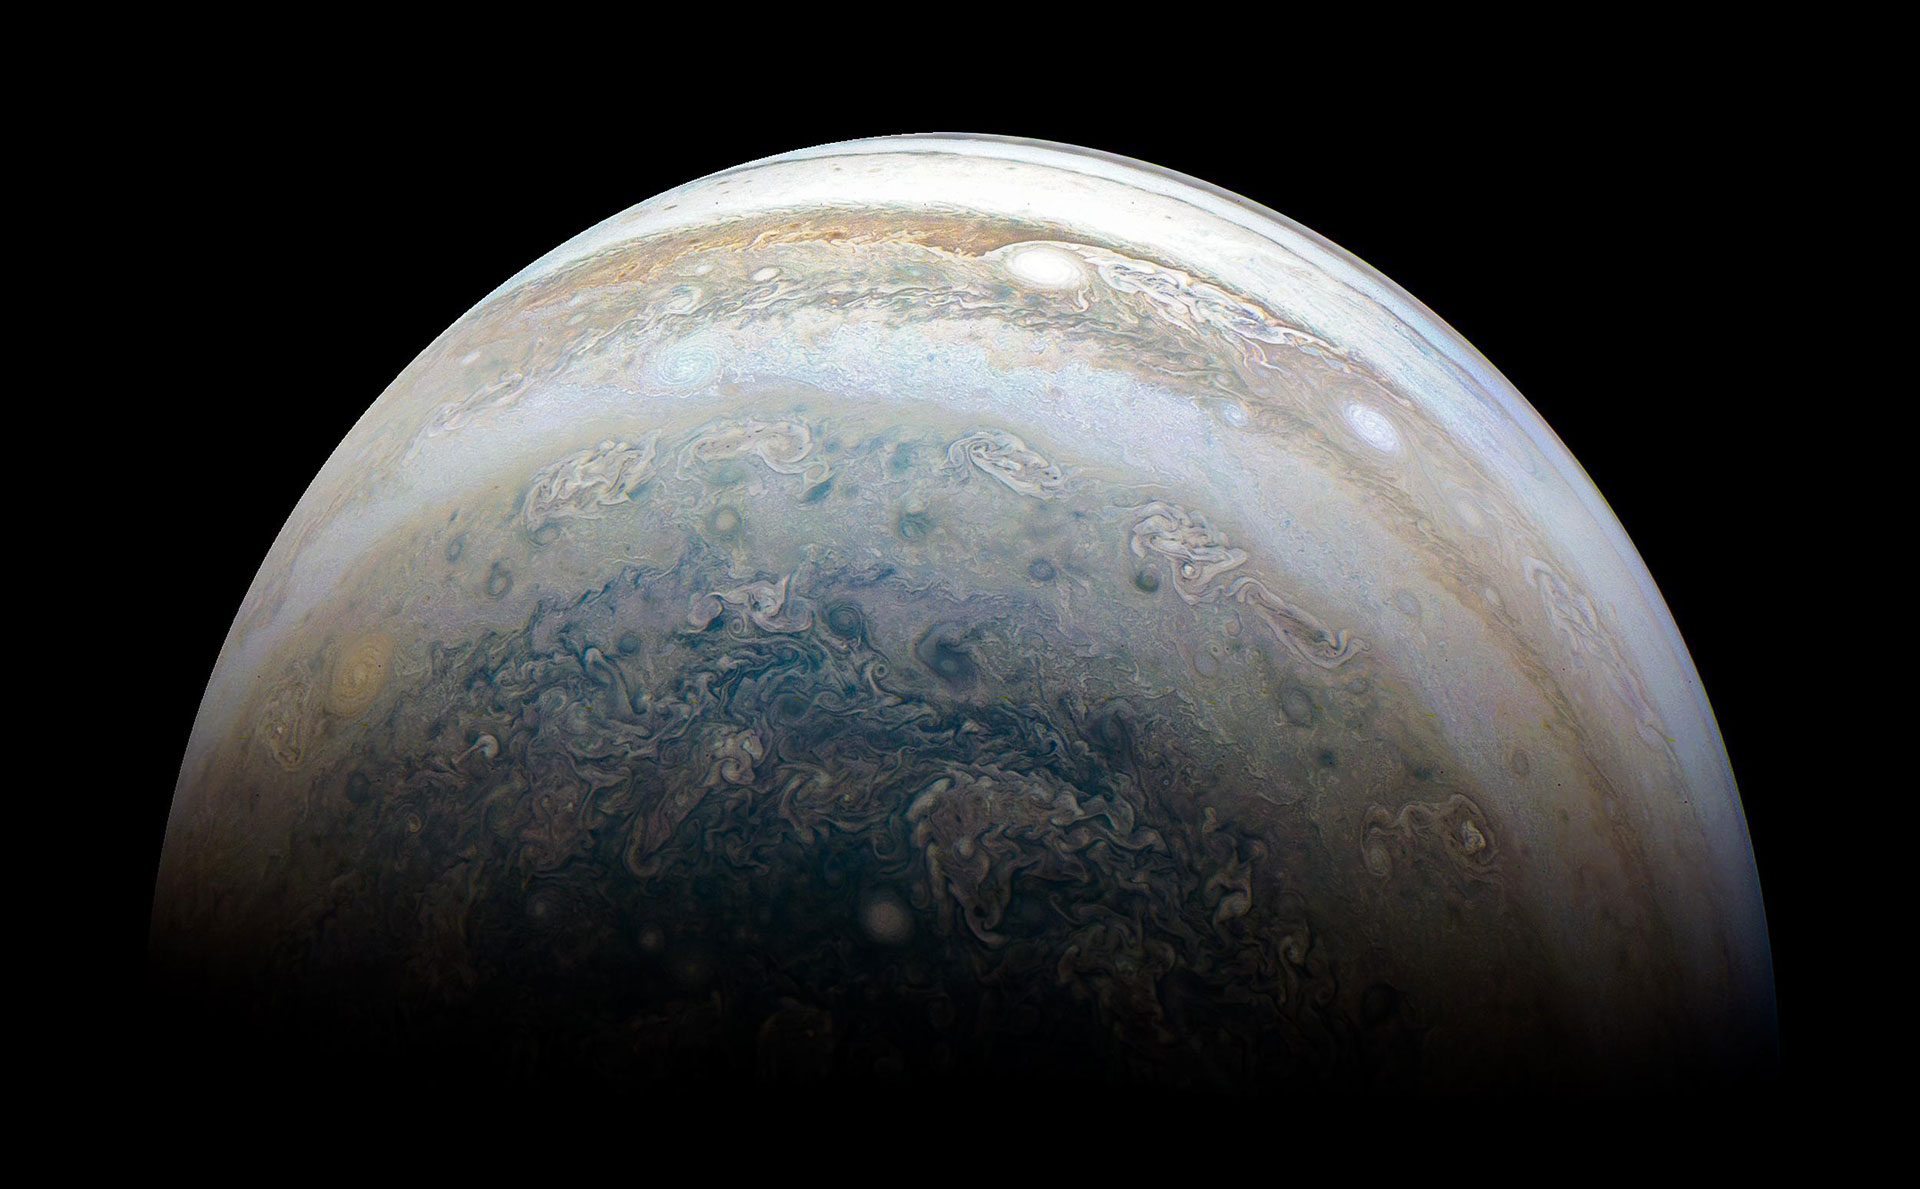 NASA Juno Spacecraft Image of Jupiter From 13th Close Flyby